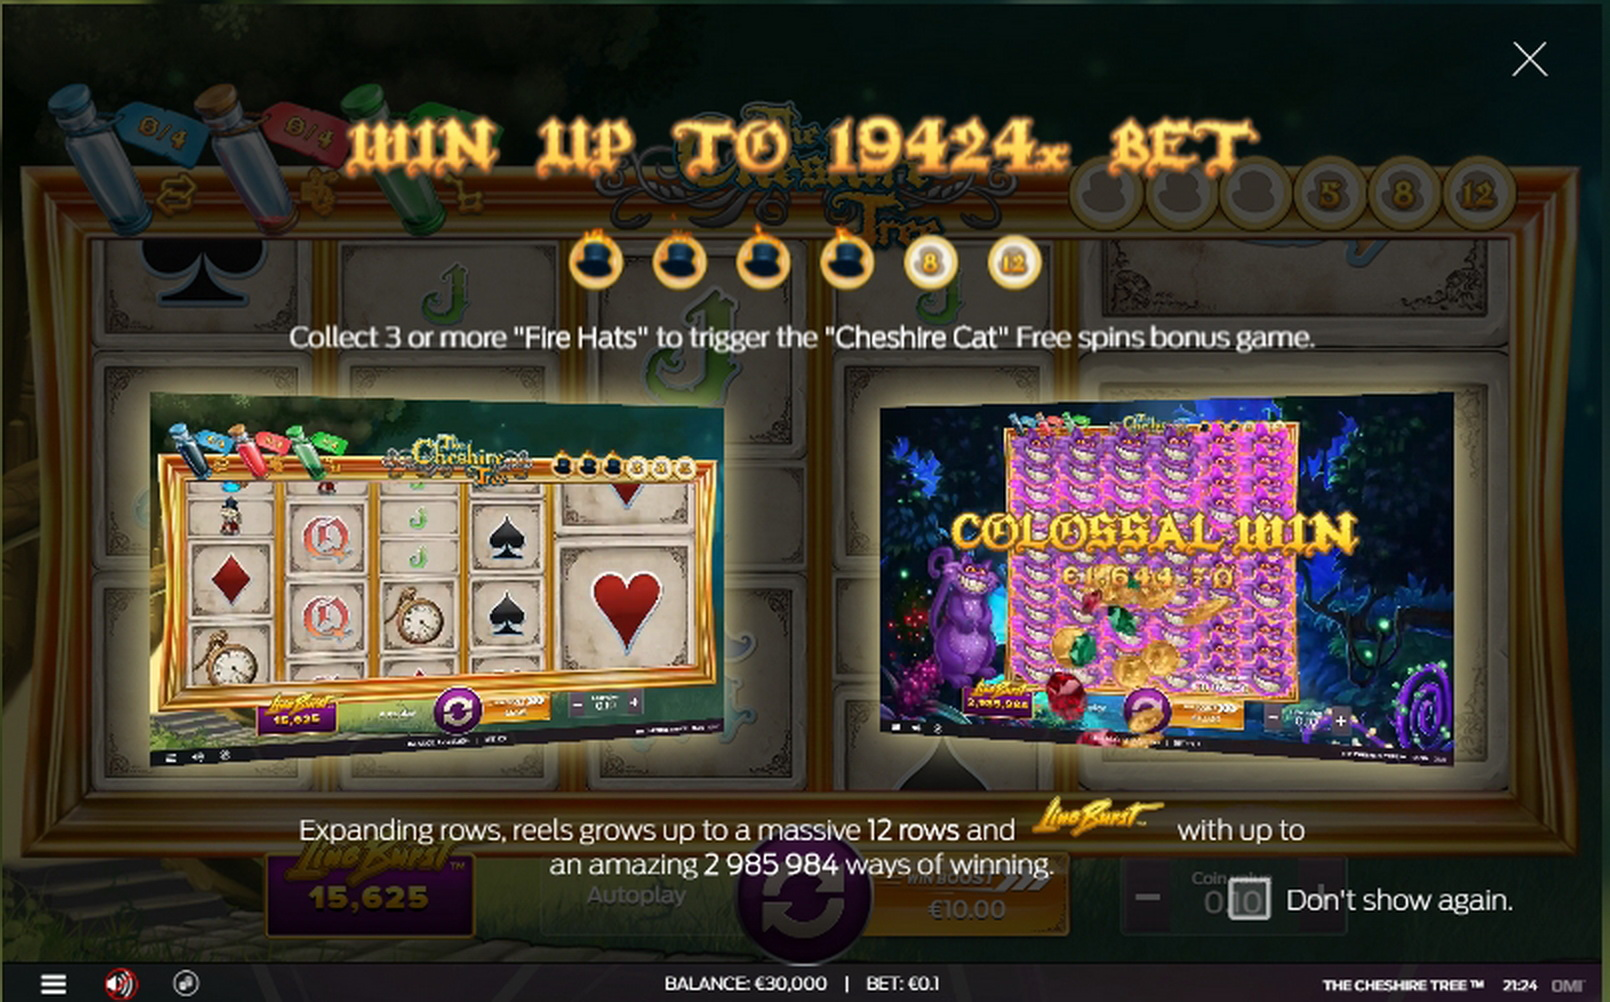 Play The Cheshire Tree Free Casino Slot Game by OMI Gaming